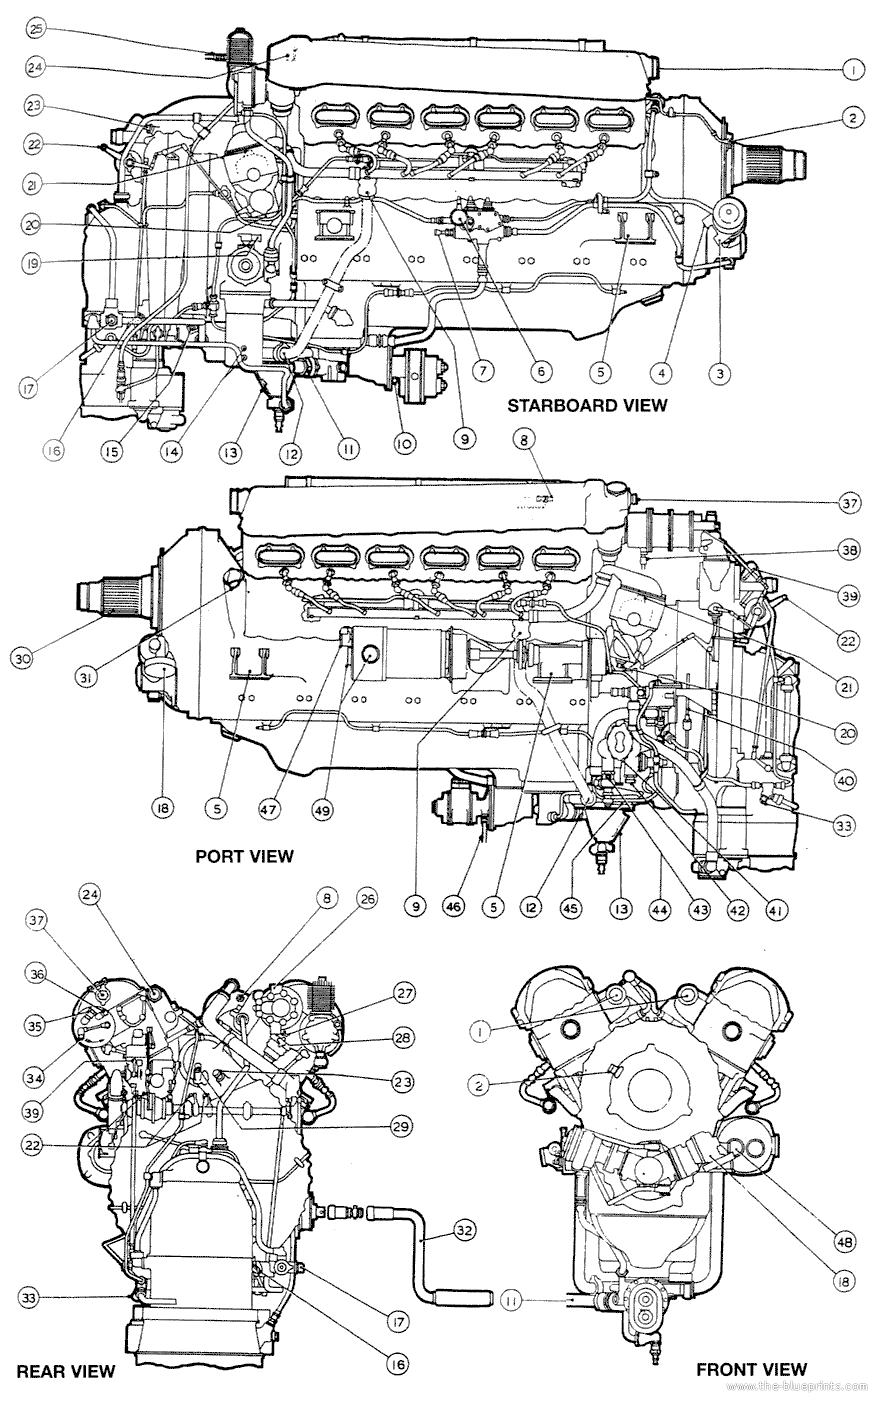 ducatimeccanica additionally Harley Shovelhead Engine Art likewise Parts Diagram 1949 Mercury additionally 555772410237131140 moreover V8 Engine Piston Drawing. on flathead drawings engines